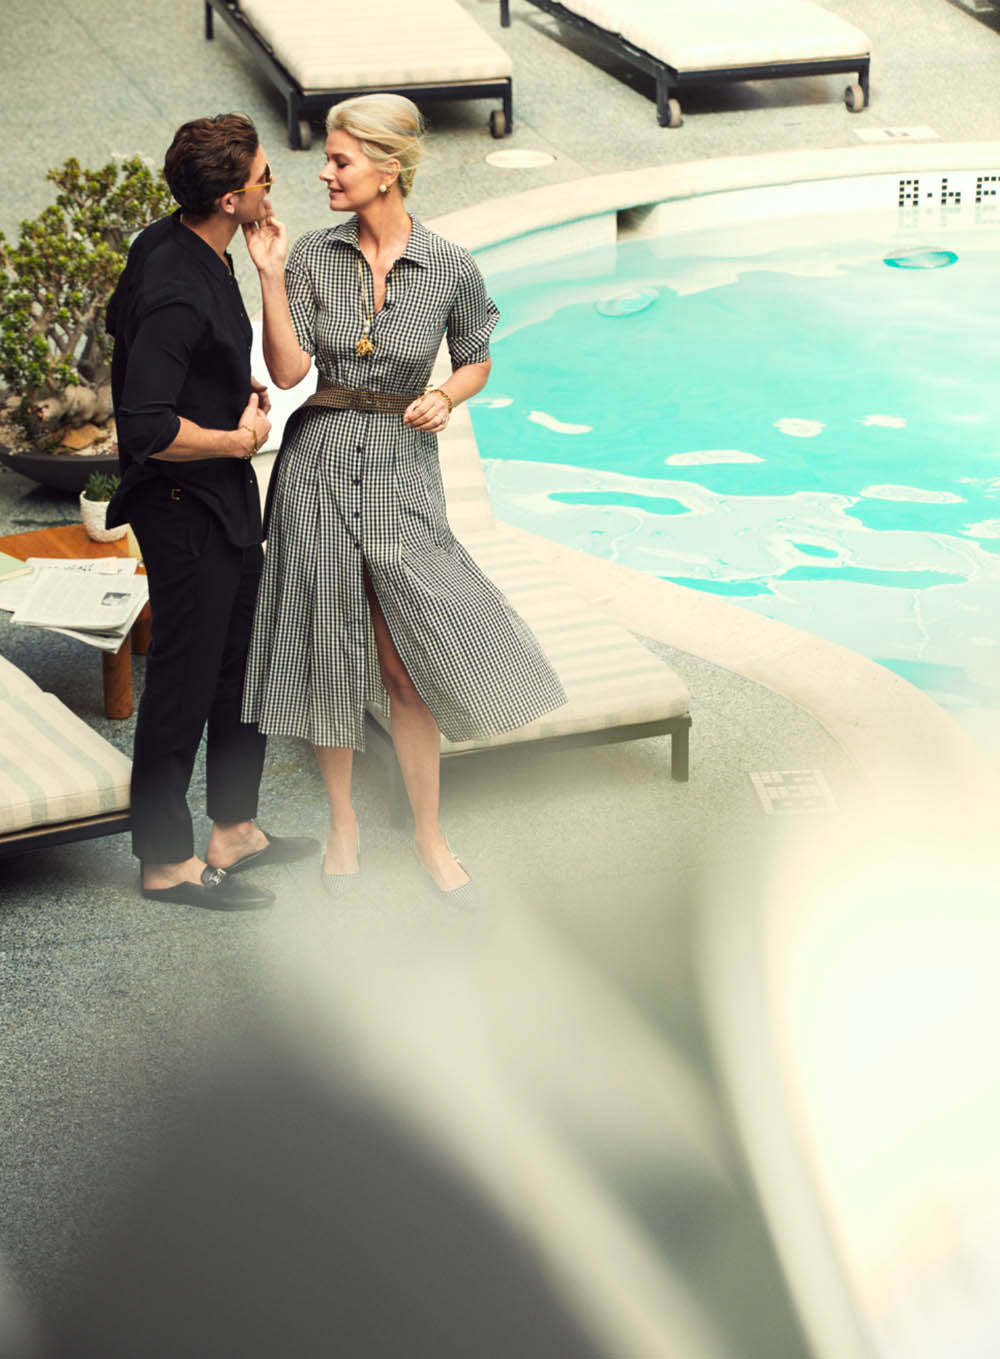 Paulina Porizkova and Adam Senn by Alexi Lubomirski for Harper's Bazaar US May 2020